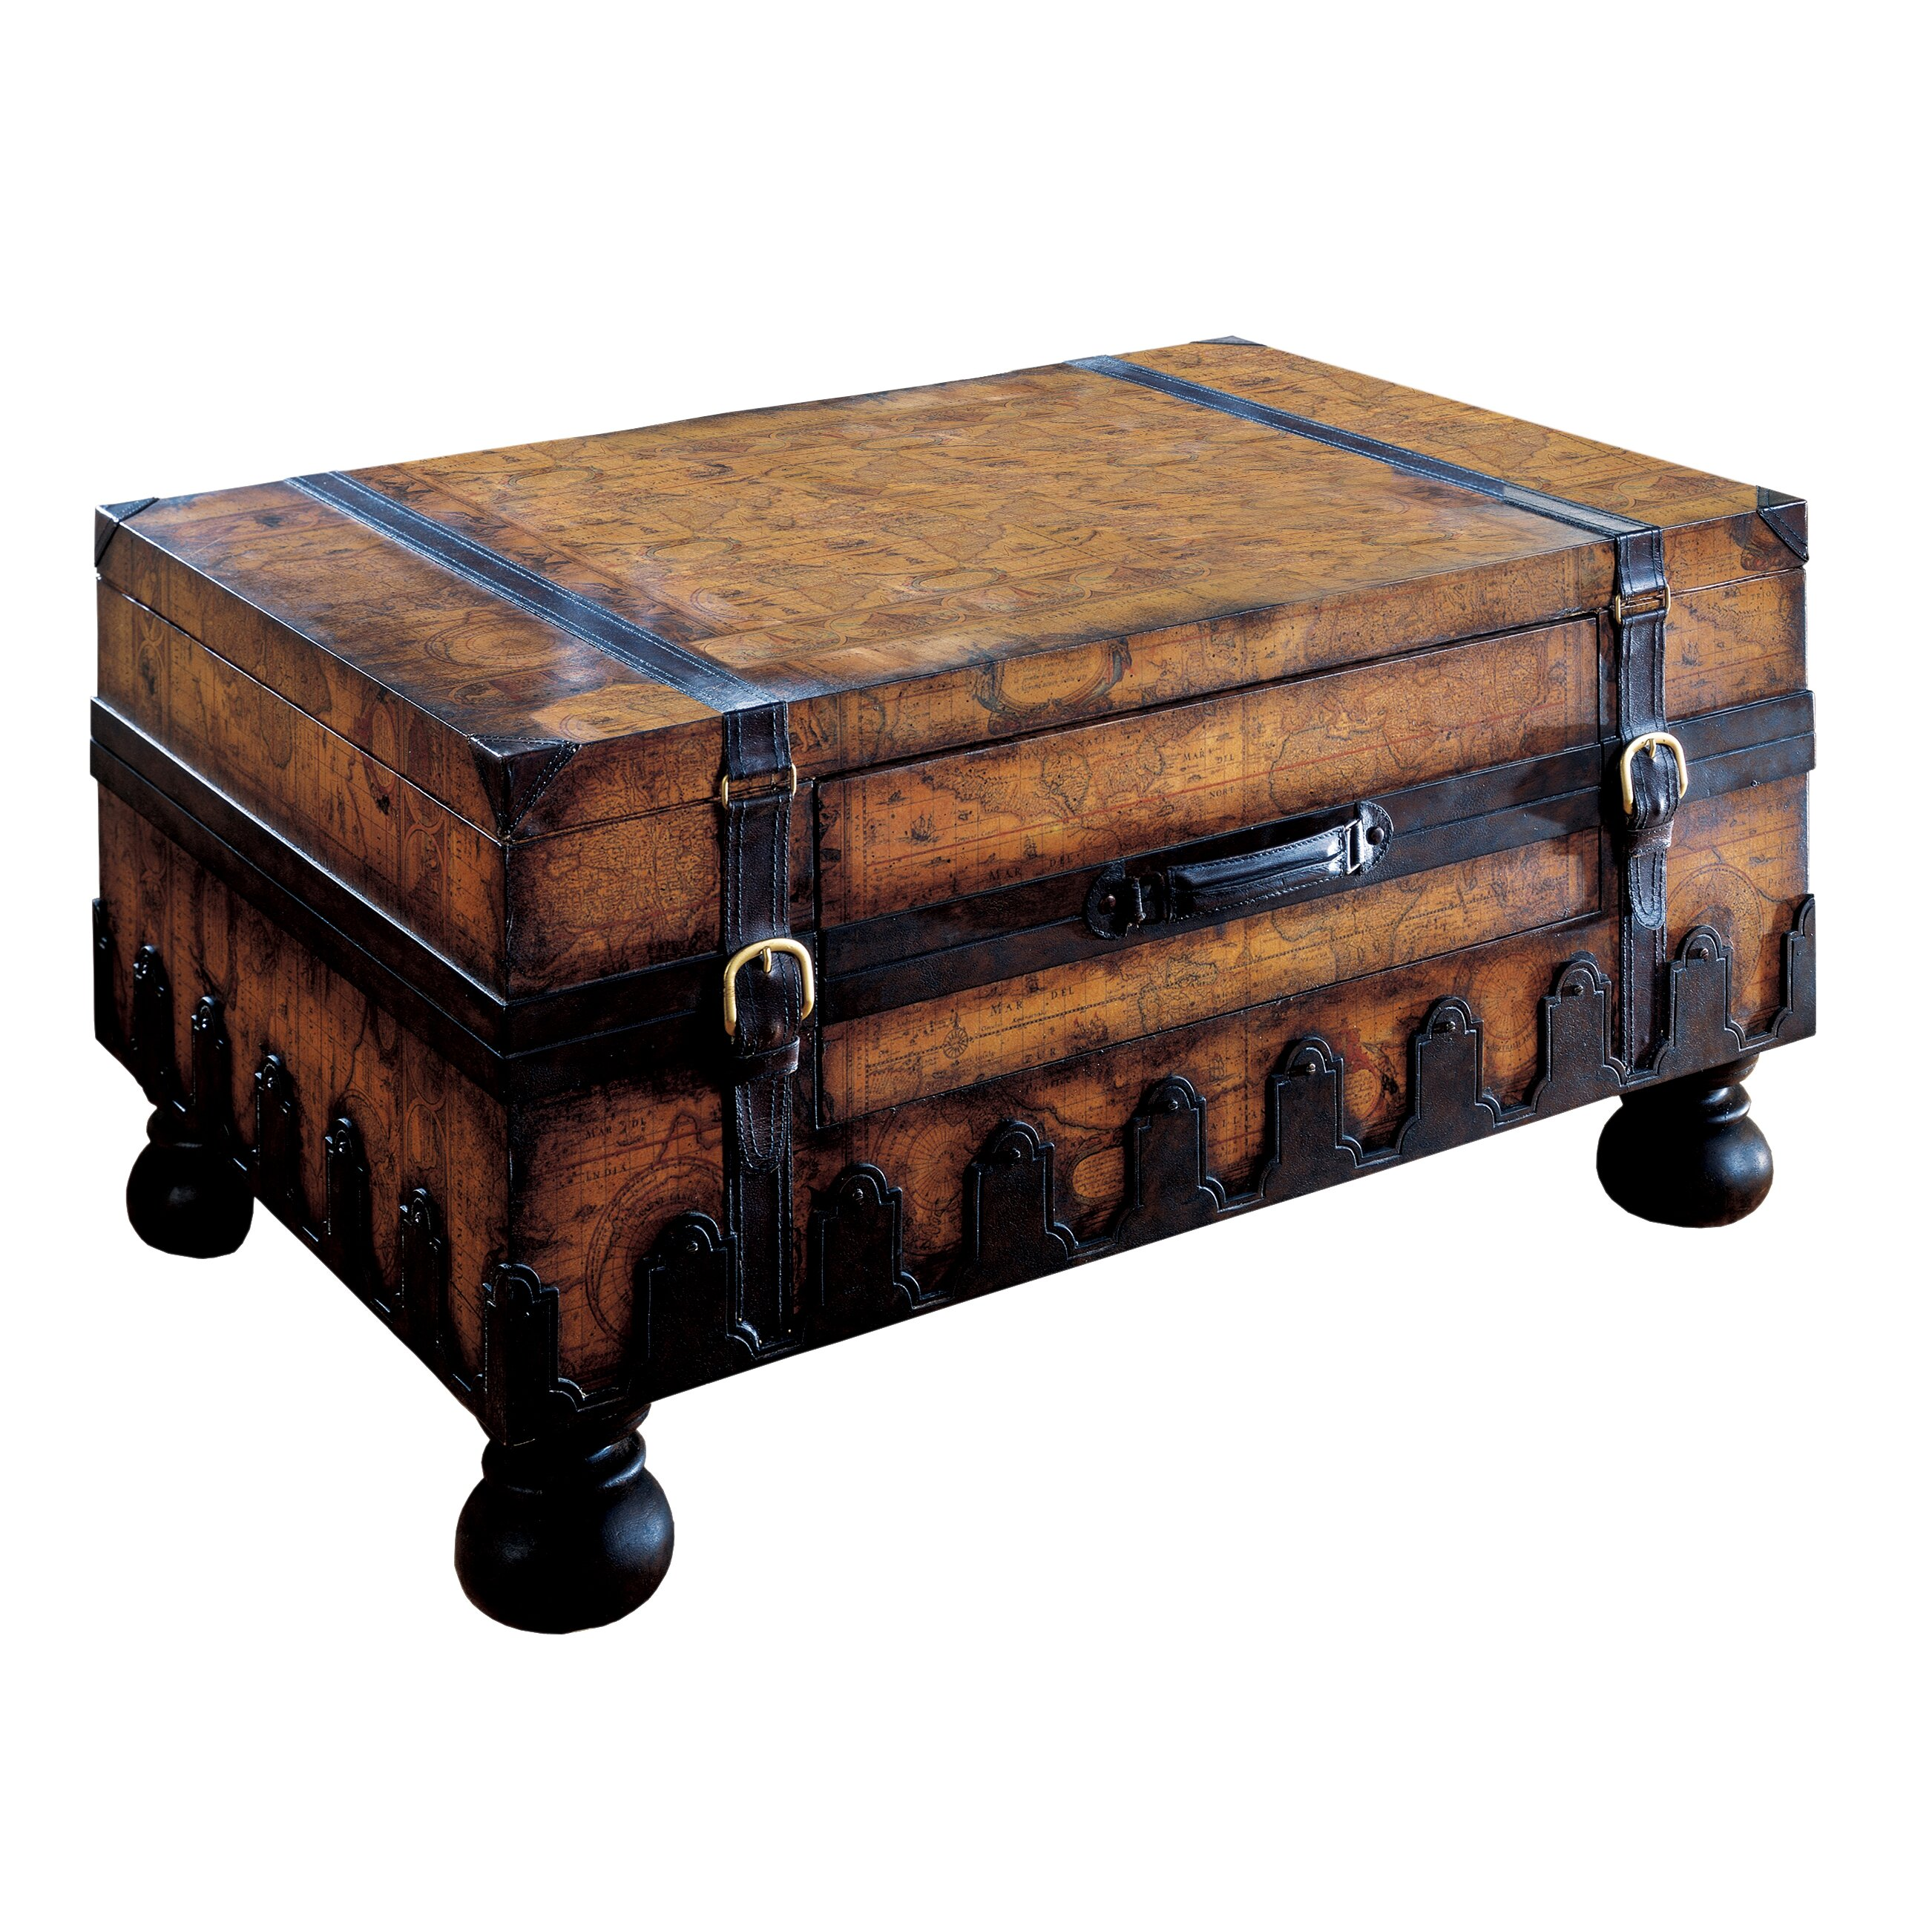 Next Trunk Coffee Table: Butler Heritage Trunk Coffee Table & Reviews